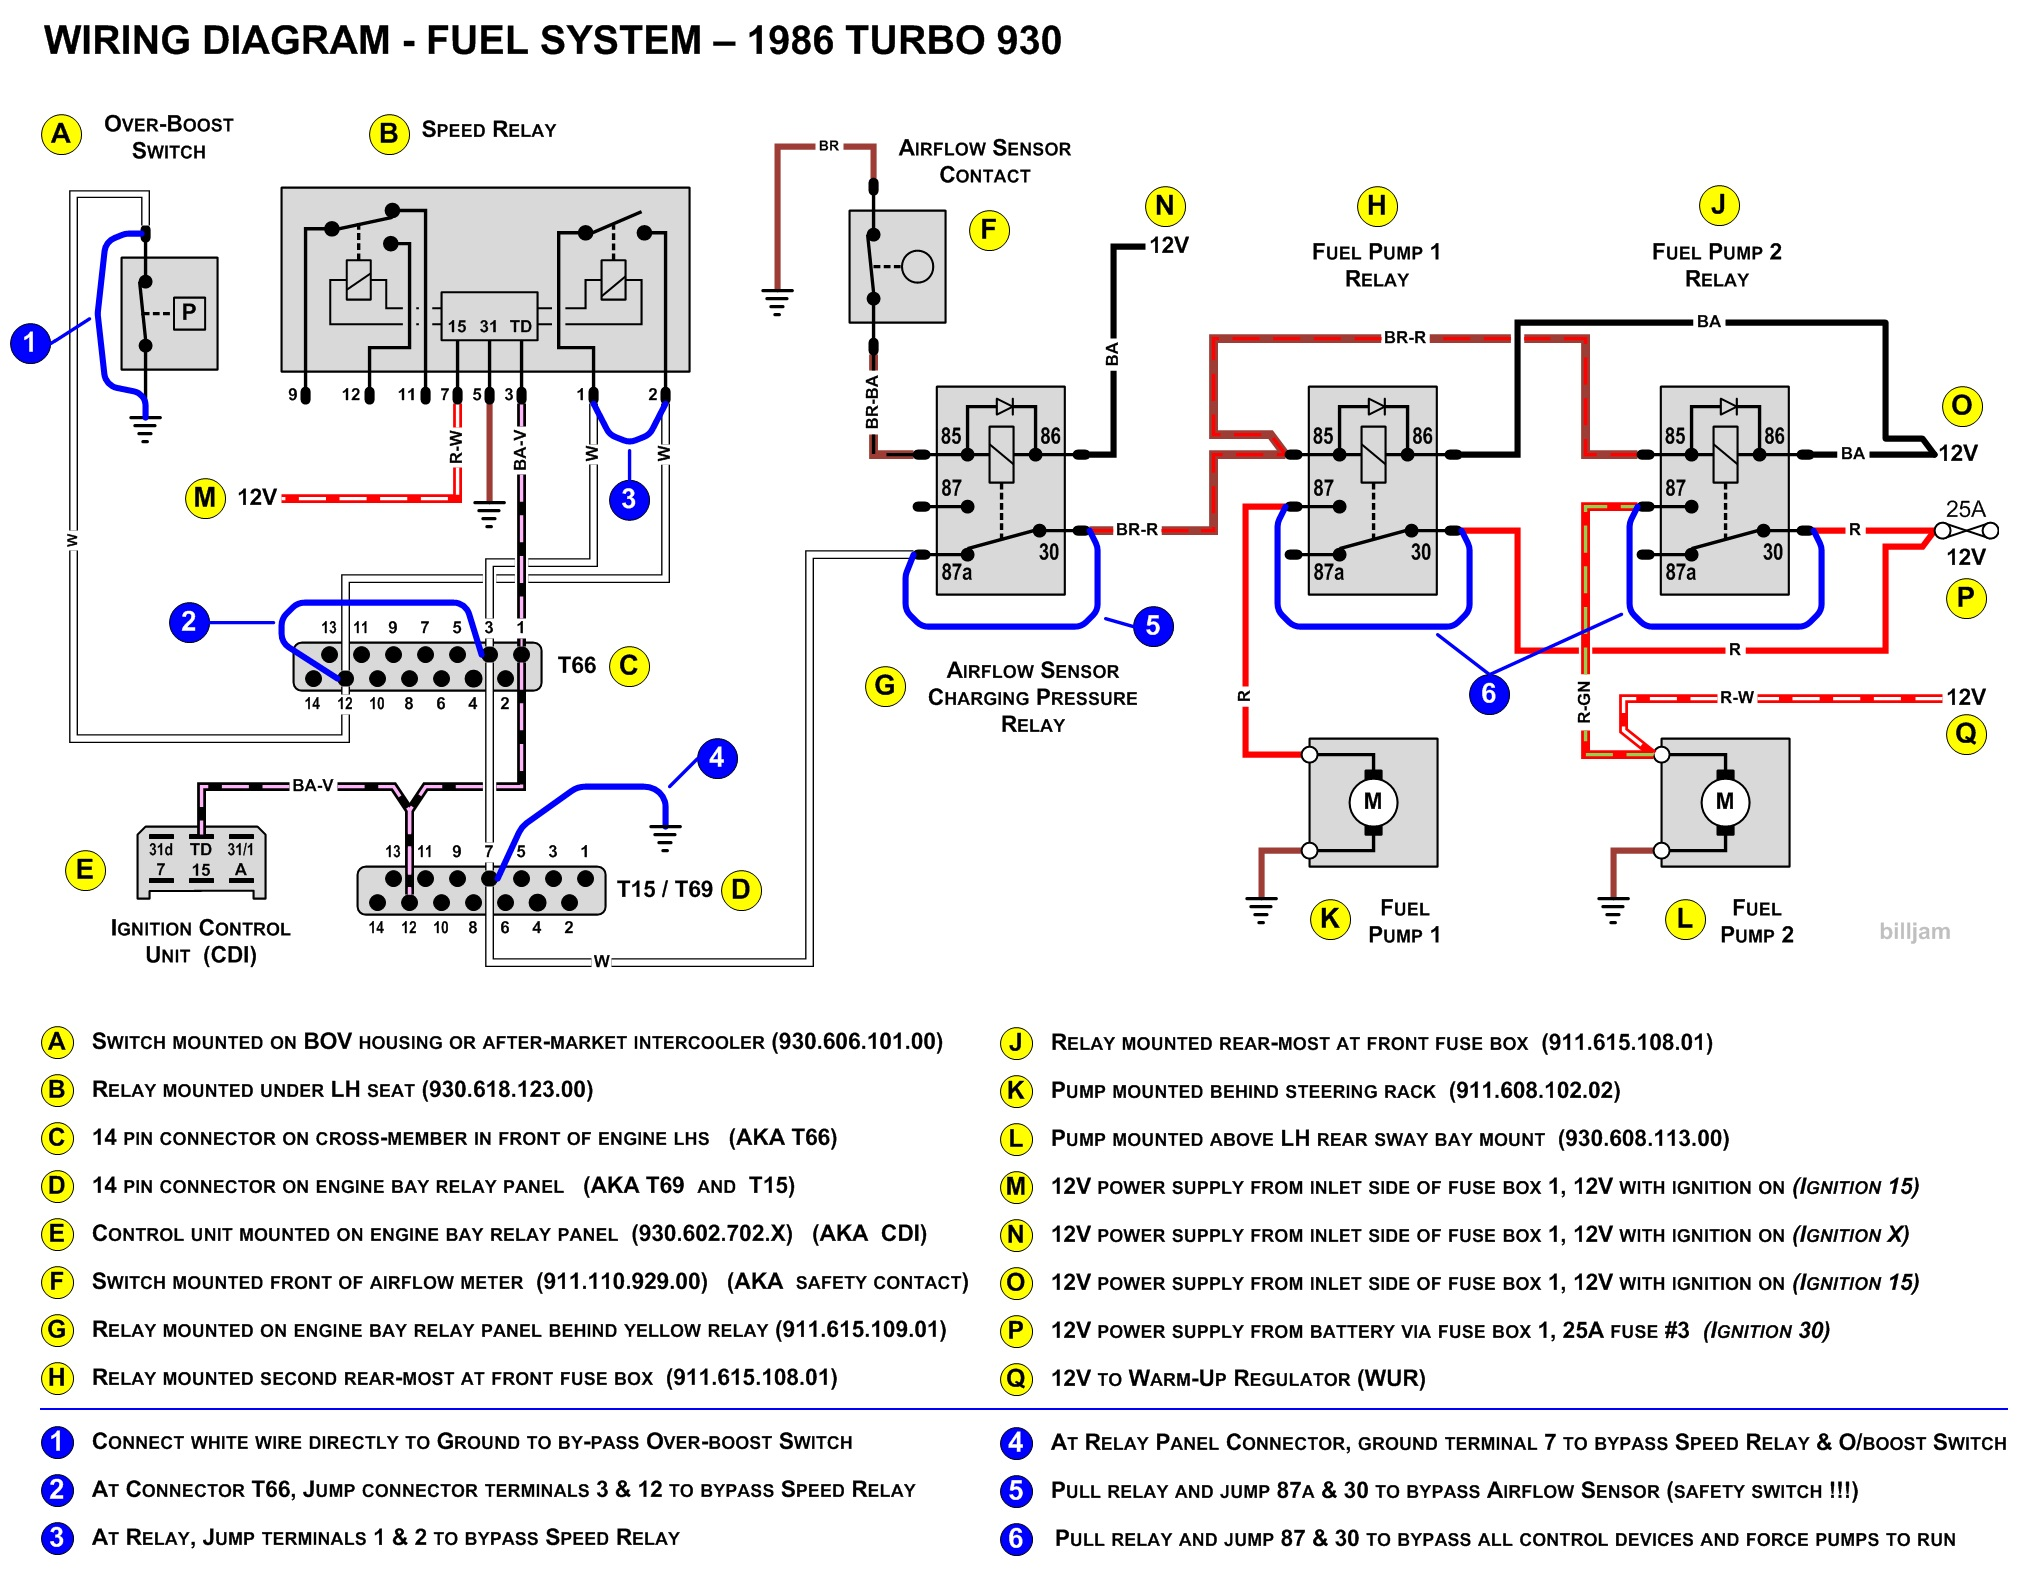 86 porsche 930 fuel system wiring diagram jumpers made a fuse box label for my 88 page 3 pelican parts technical bbs fuse box label at gsmportal.co